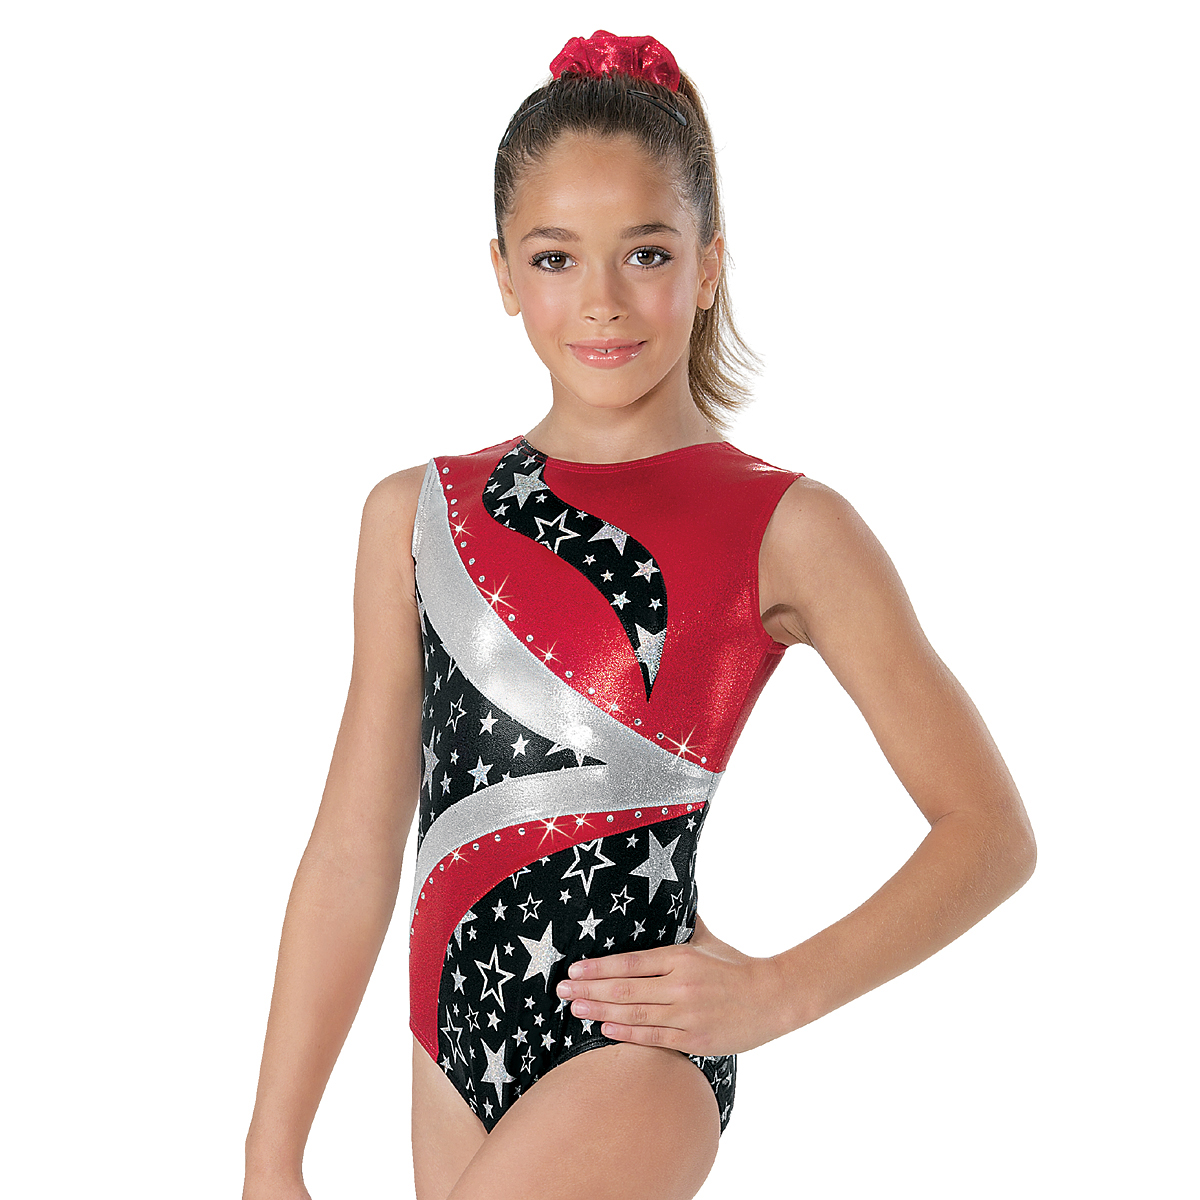 Trikot gymnastika ML8111 hologram star červená